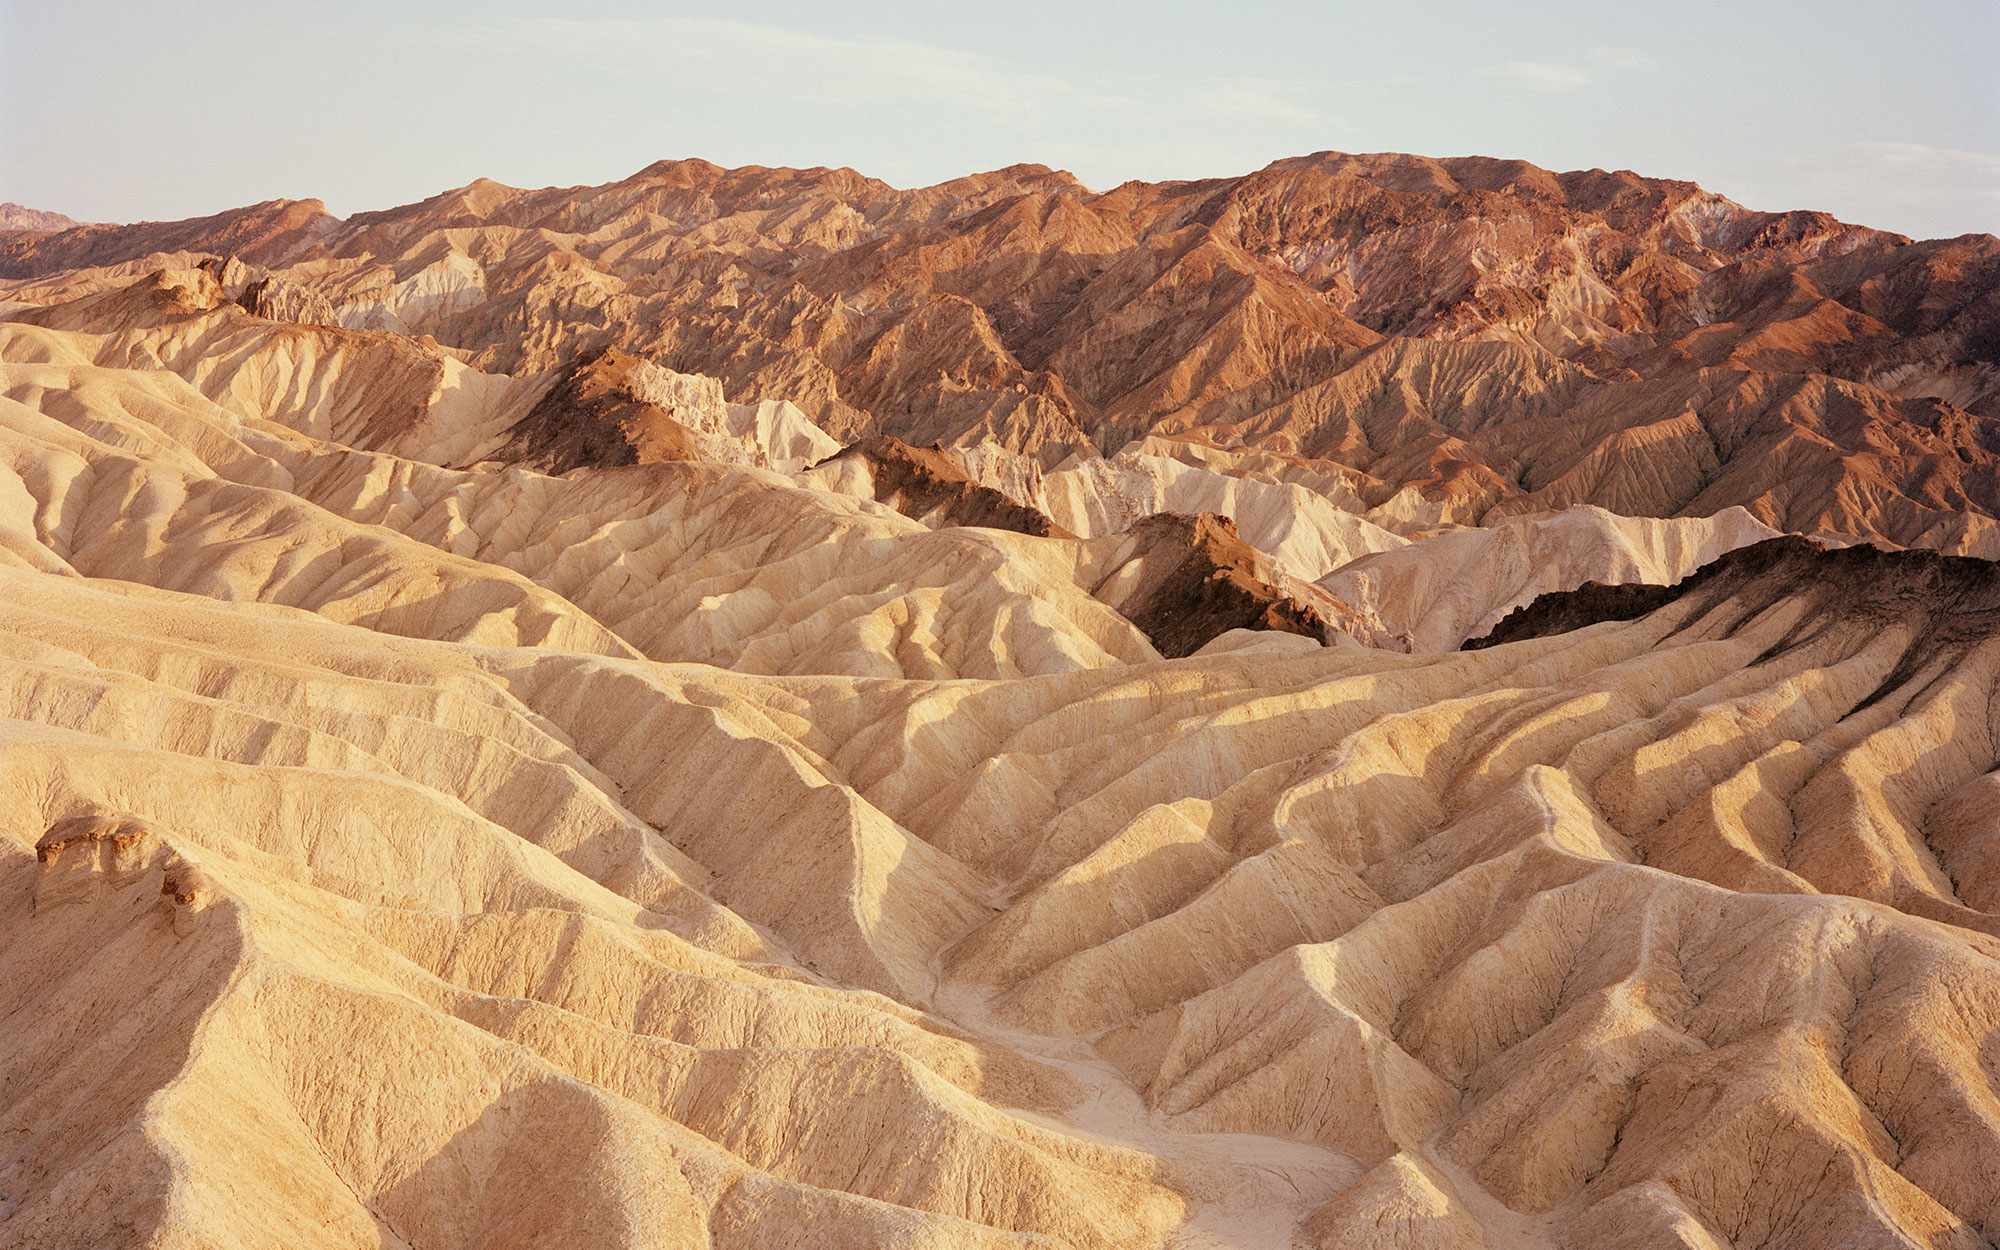 Visit 'Star Wars' Filming Locations in Death Valley